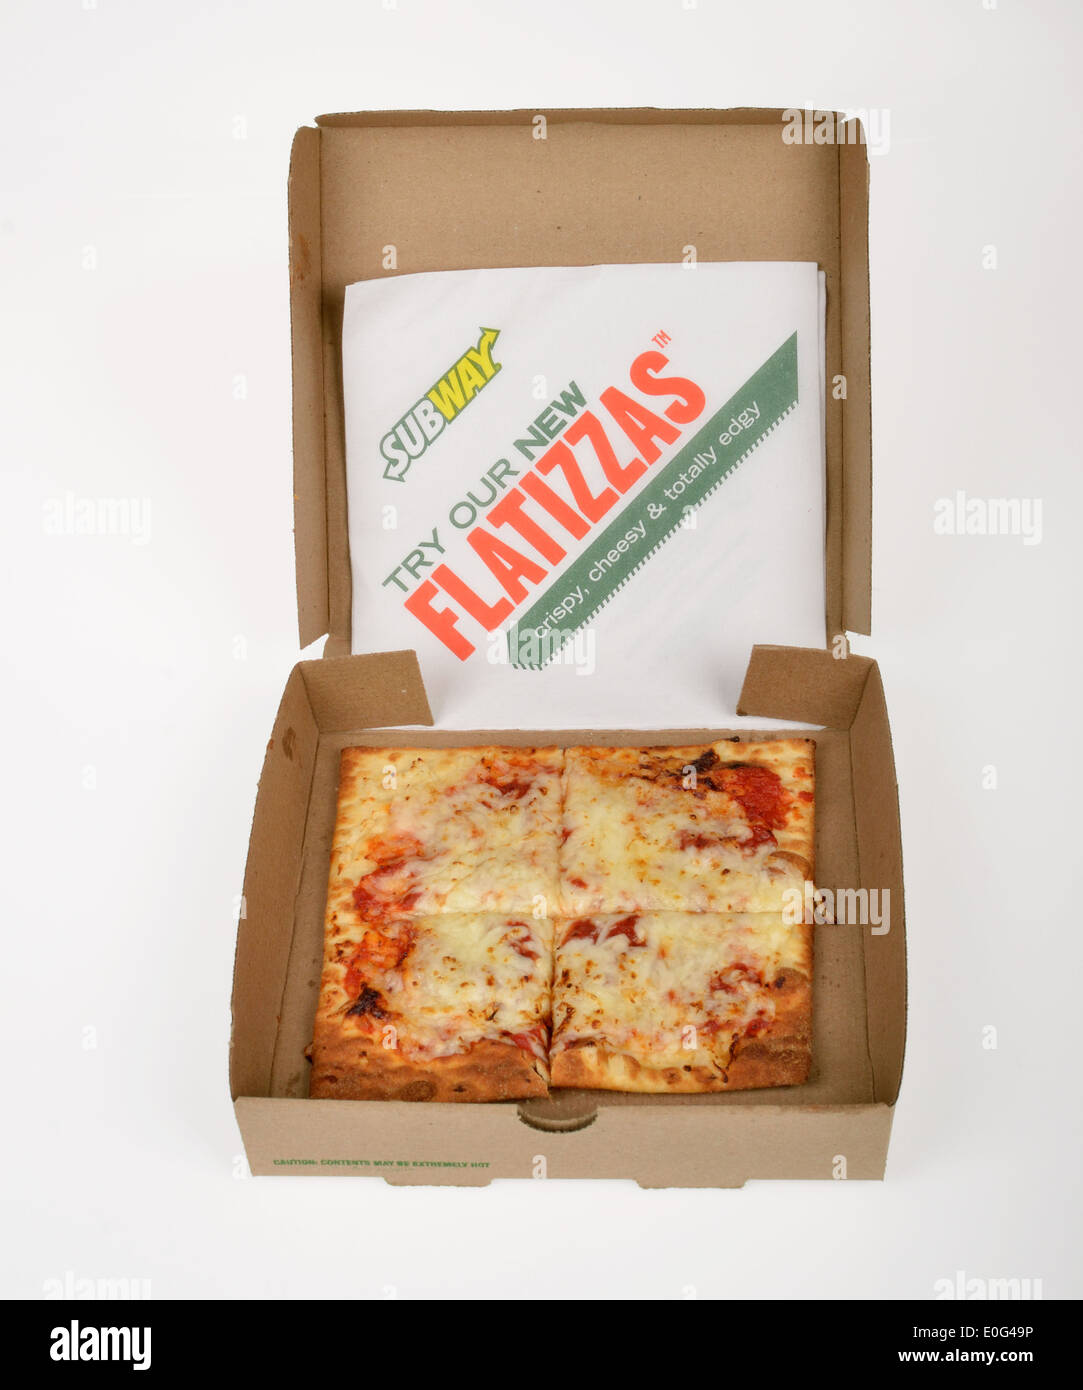 subway flatizza cheese square